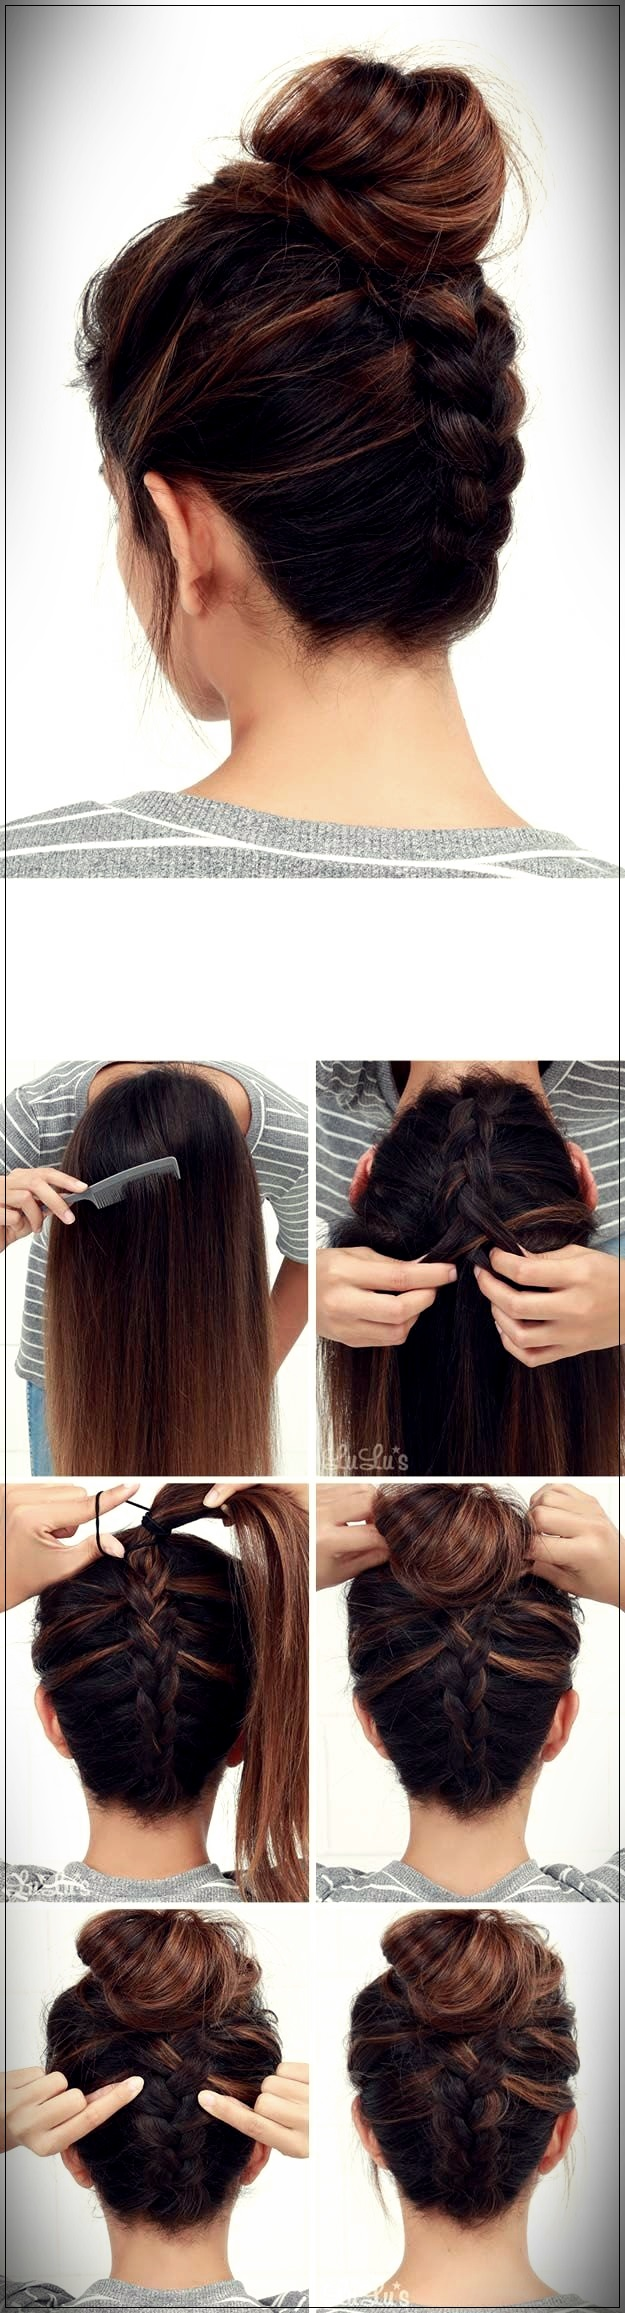 Easy Hairstyles 2019 step by step - easy hairstyles 2019 18